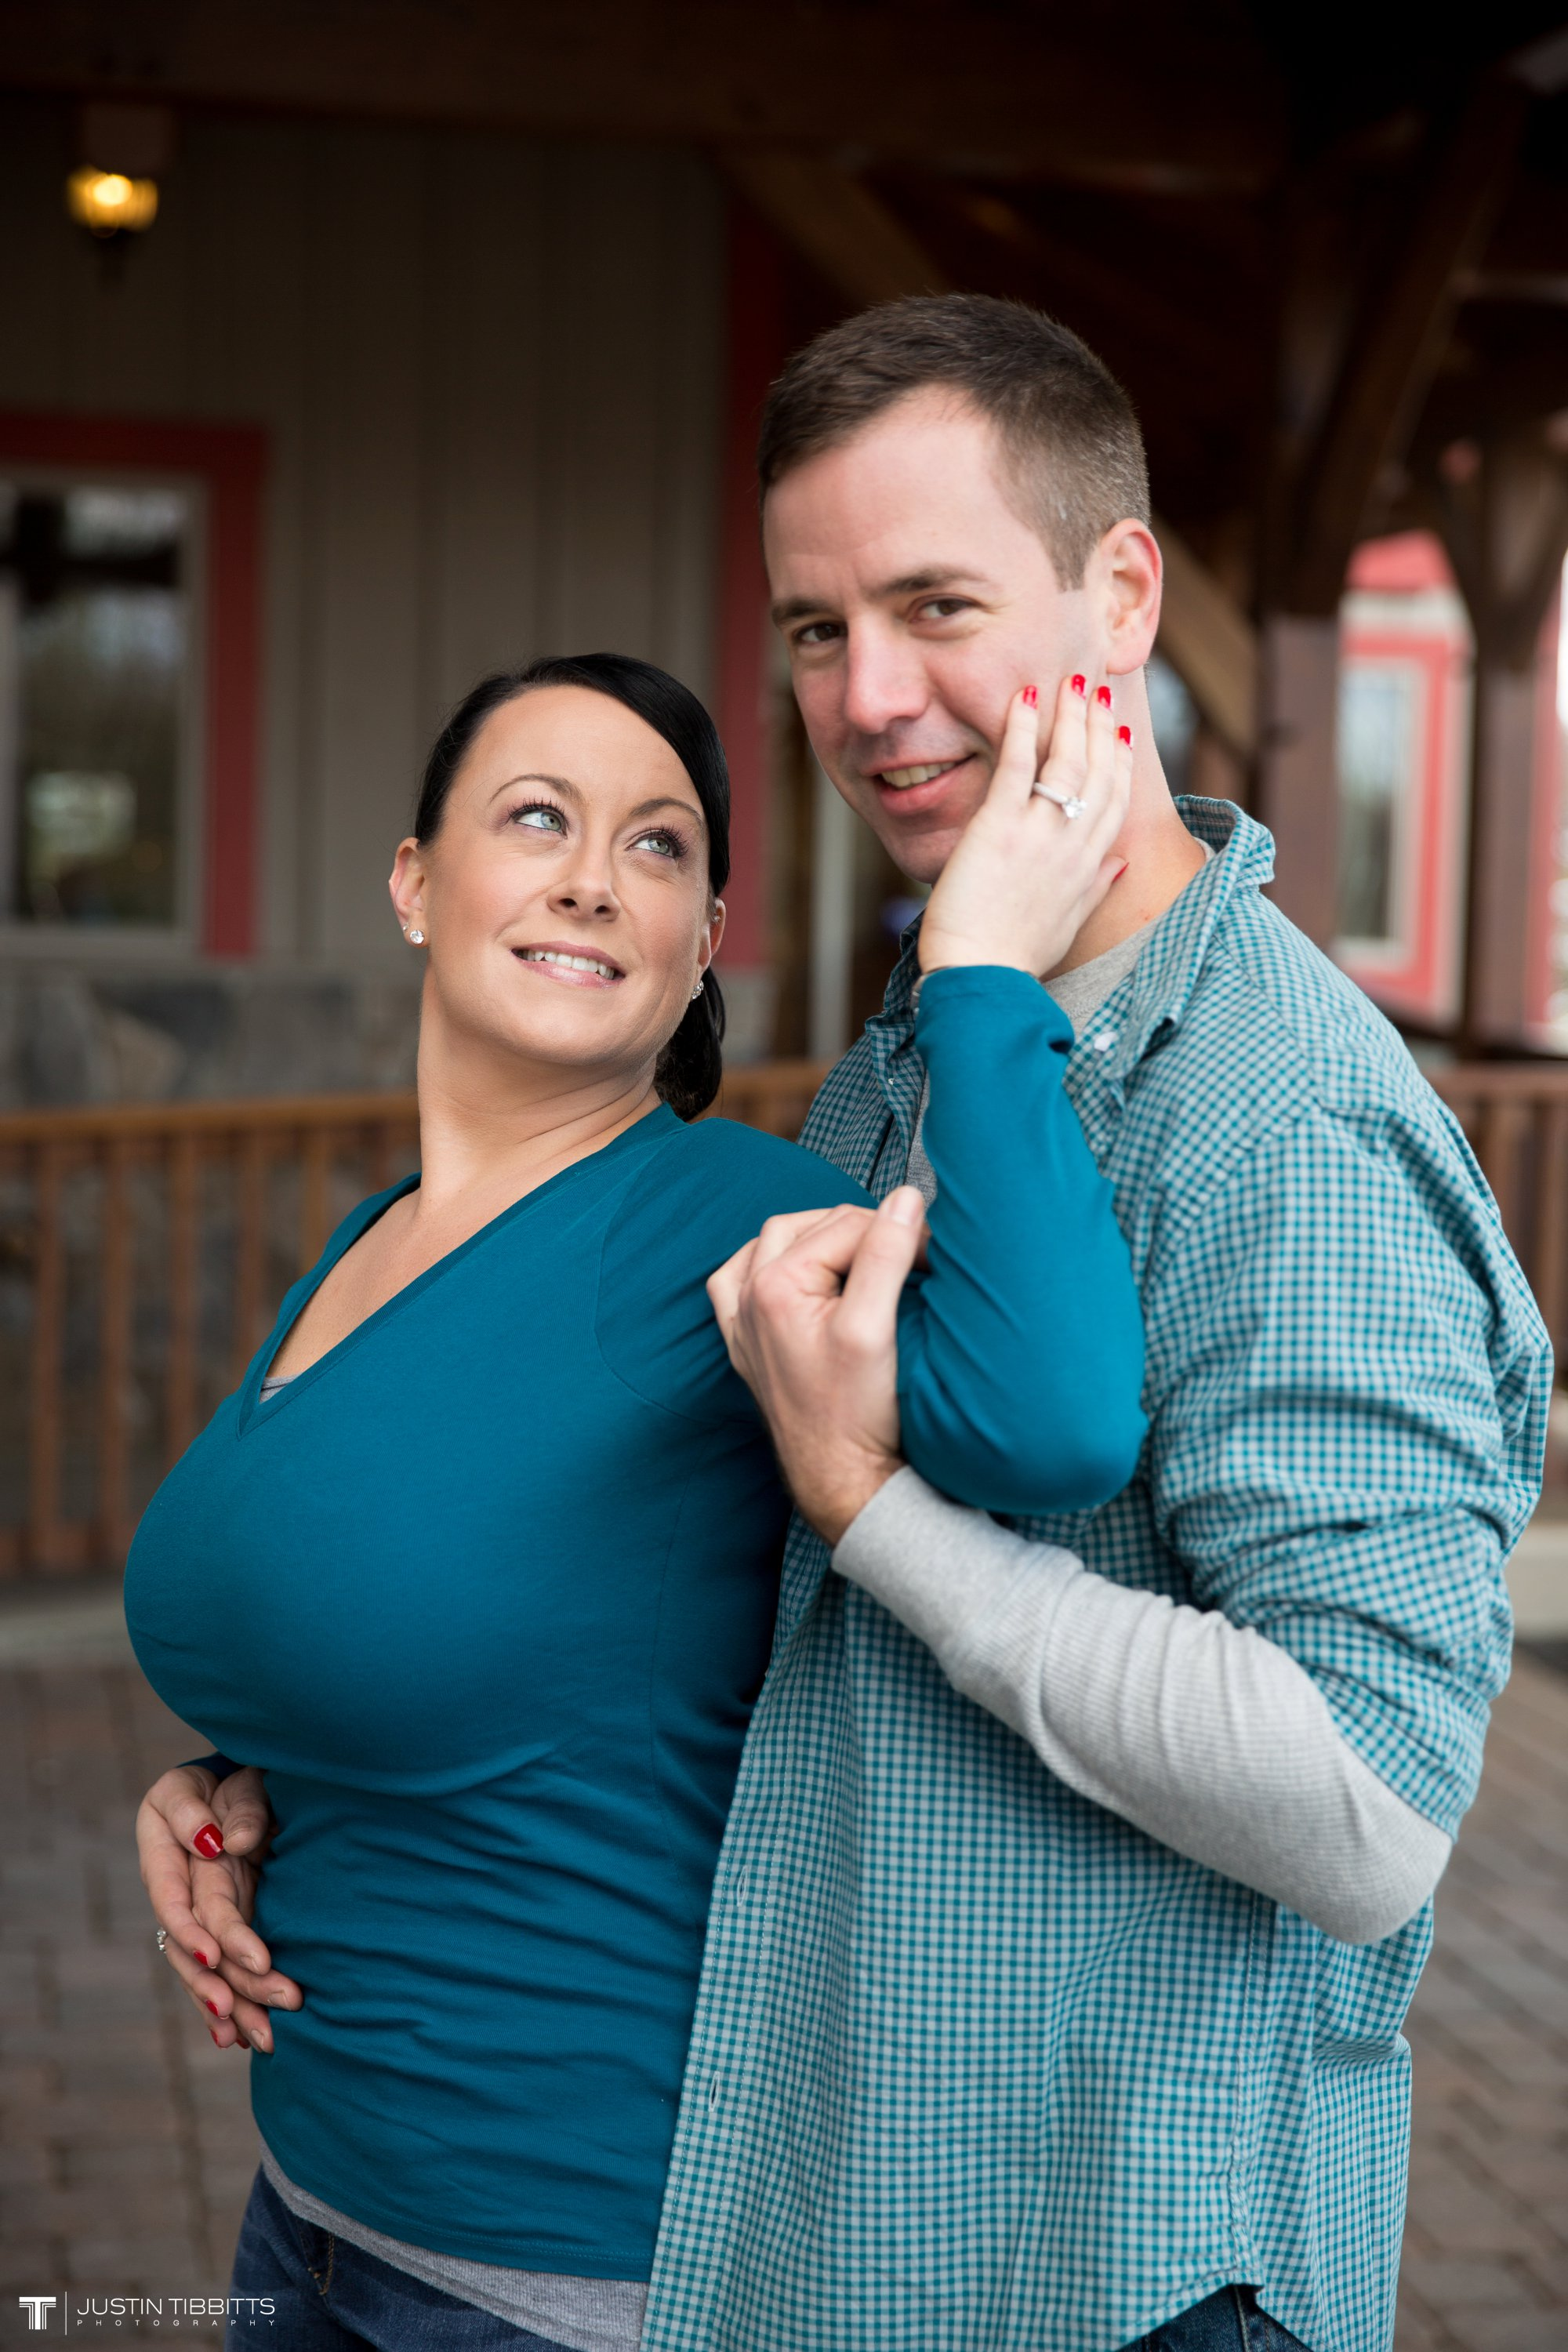 Justin Tibbitts Photography Kristie and Gregs Windham Mountain Resort Engagement Shoot-56